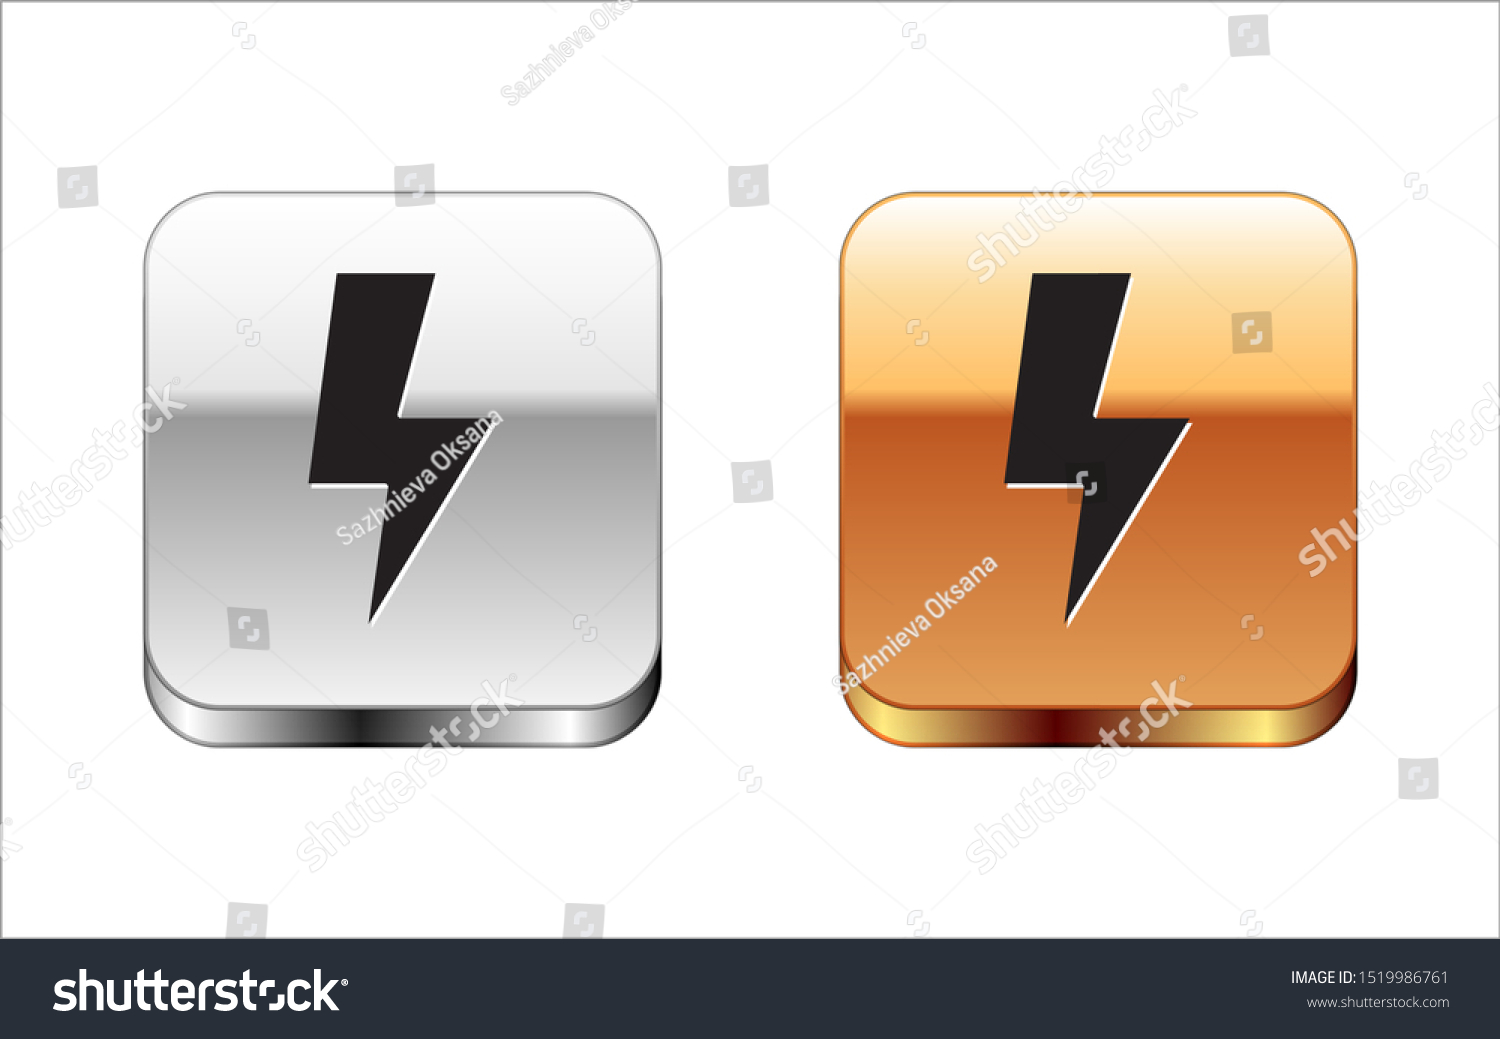 Black Lightning Bolt Icon Isolated On Stock Vector Royalty Free 1519986761,Principles Of Design Pattern Picture